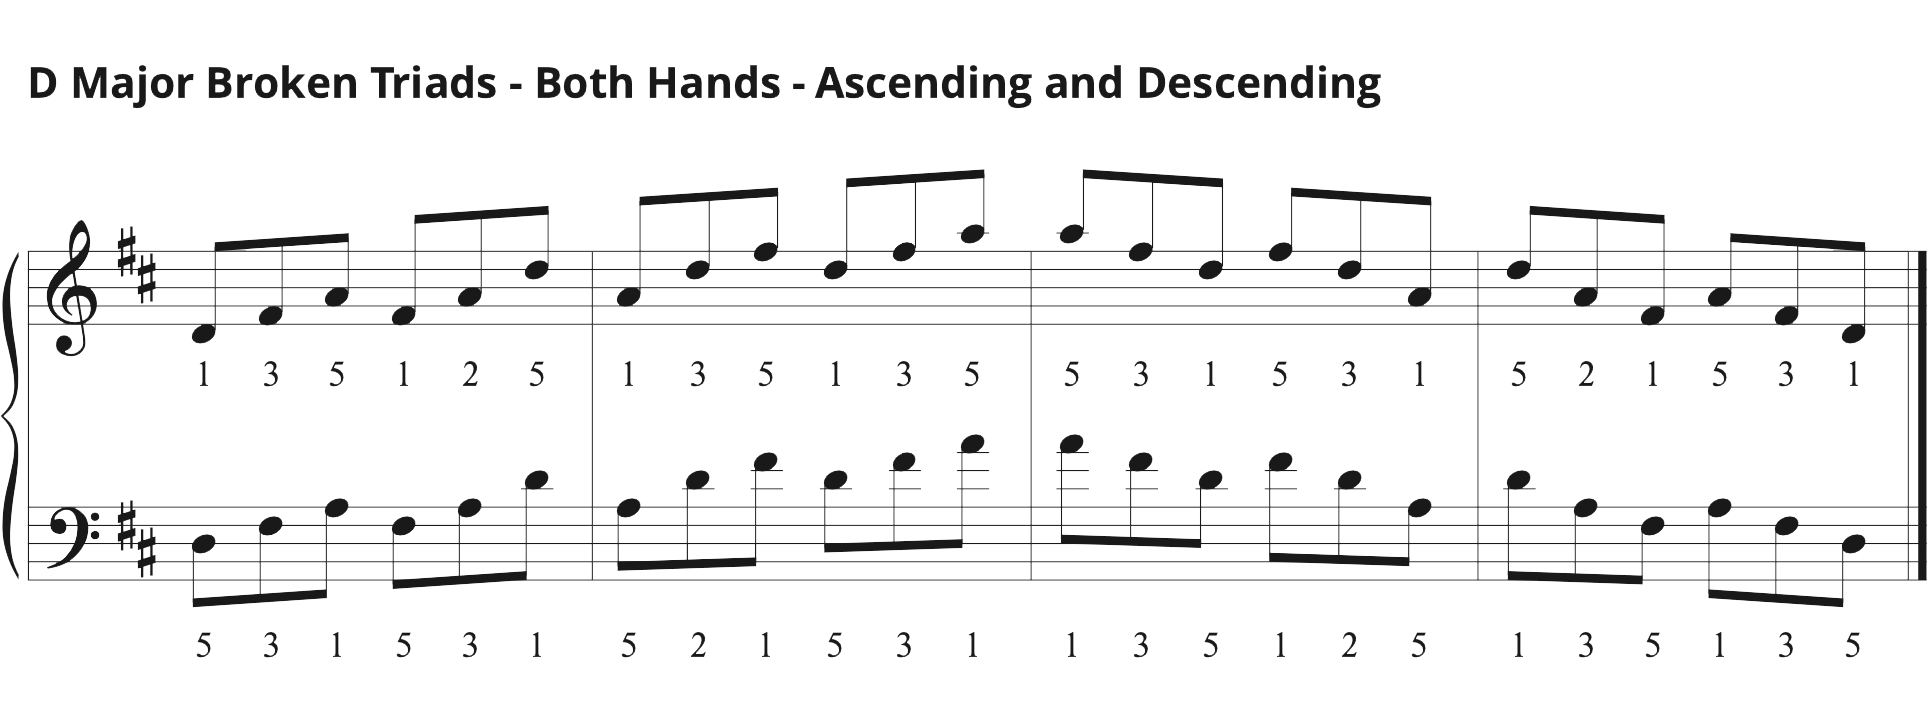 D Major Broken Triads - Both Hands - ascending and descending in triplet eighth notes with fingering on grand staff.